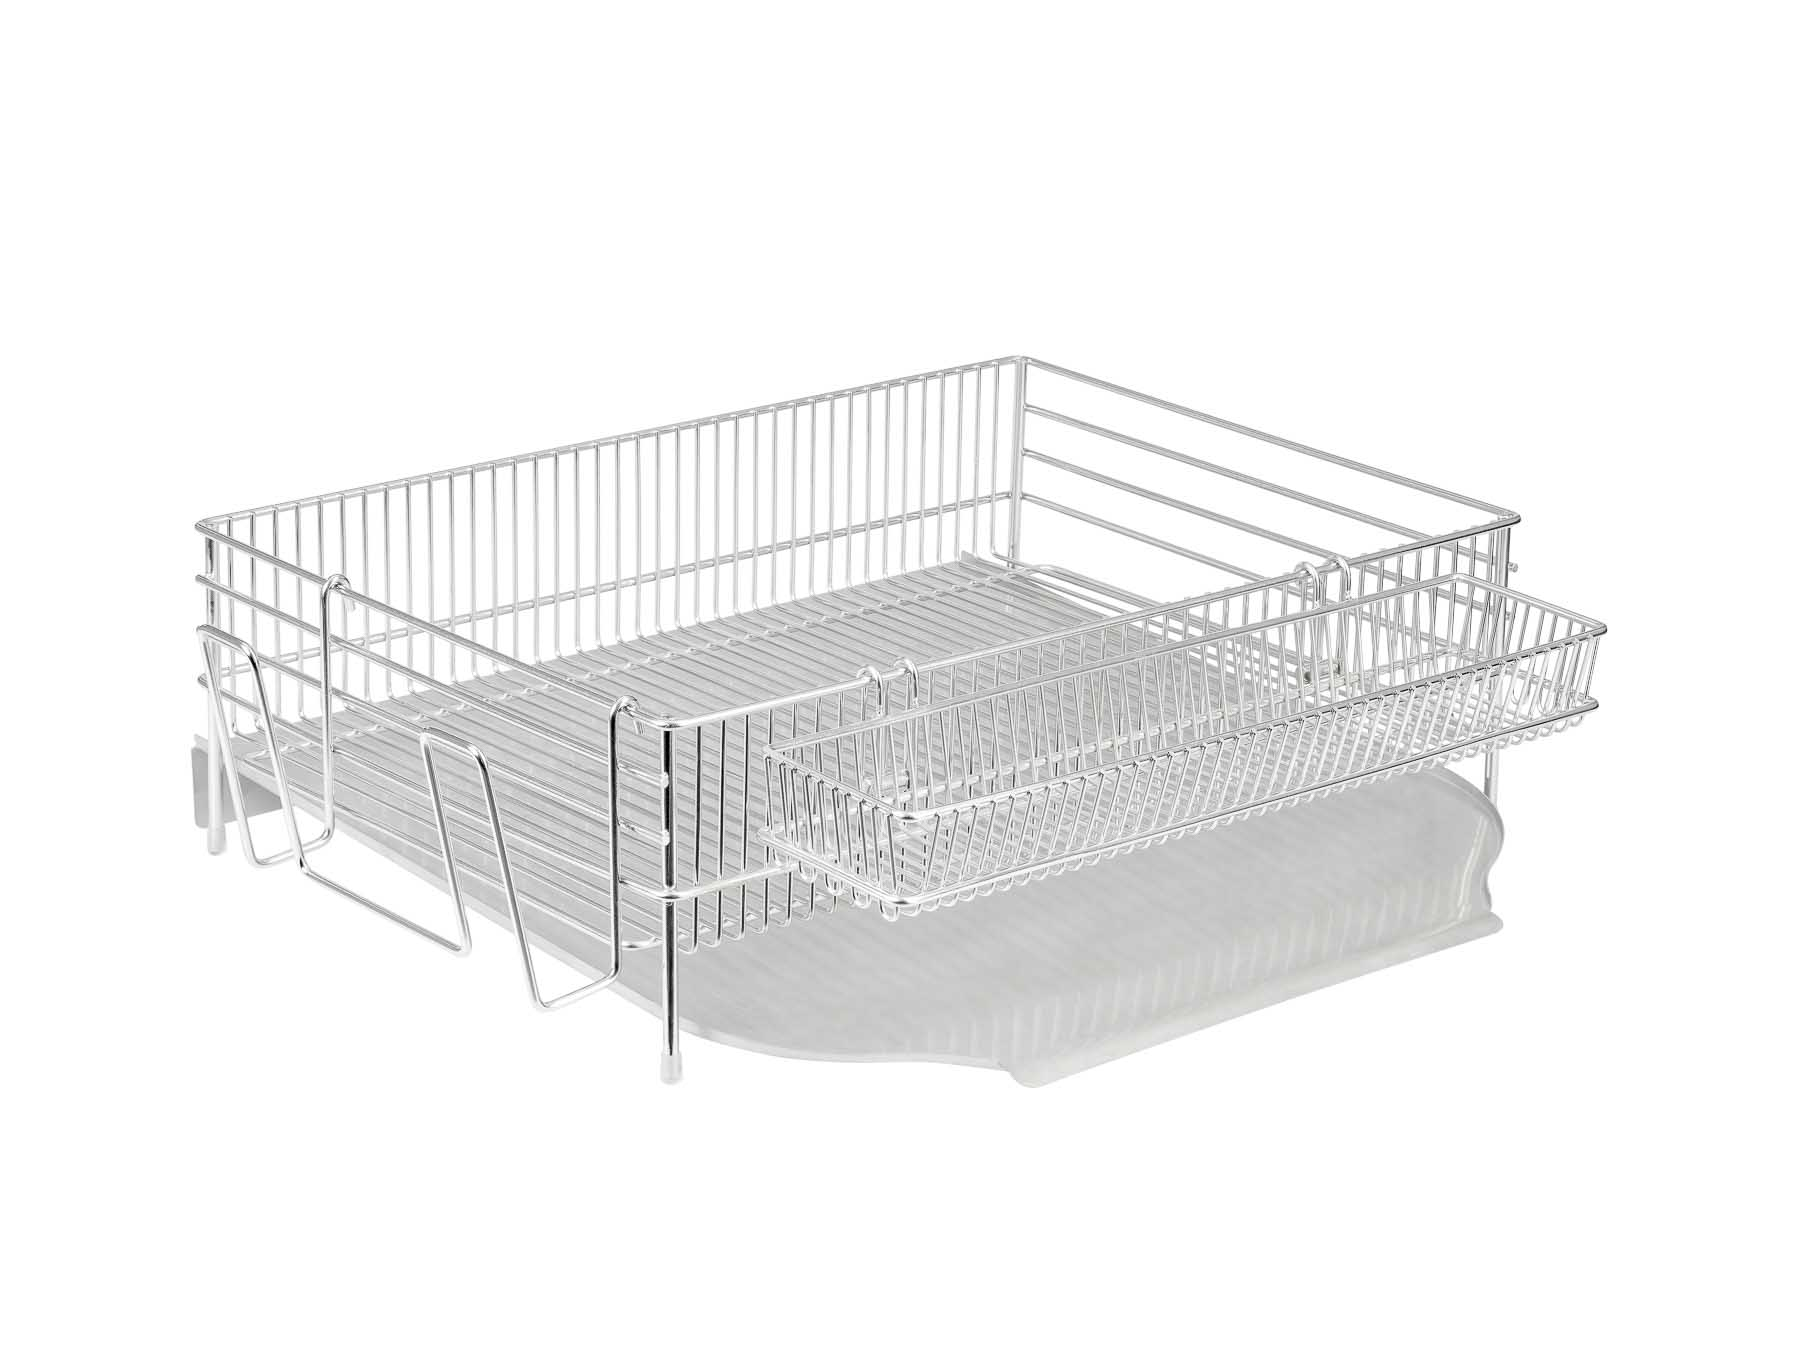 Dish Rack Full product side view - Product photography for Amazon